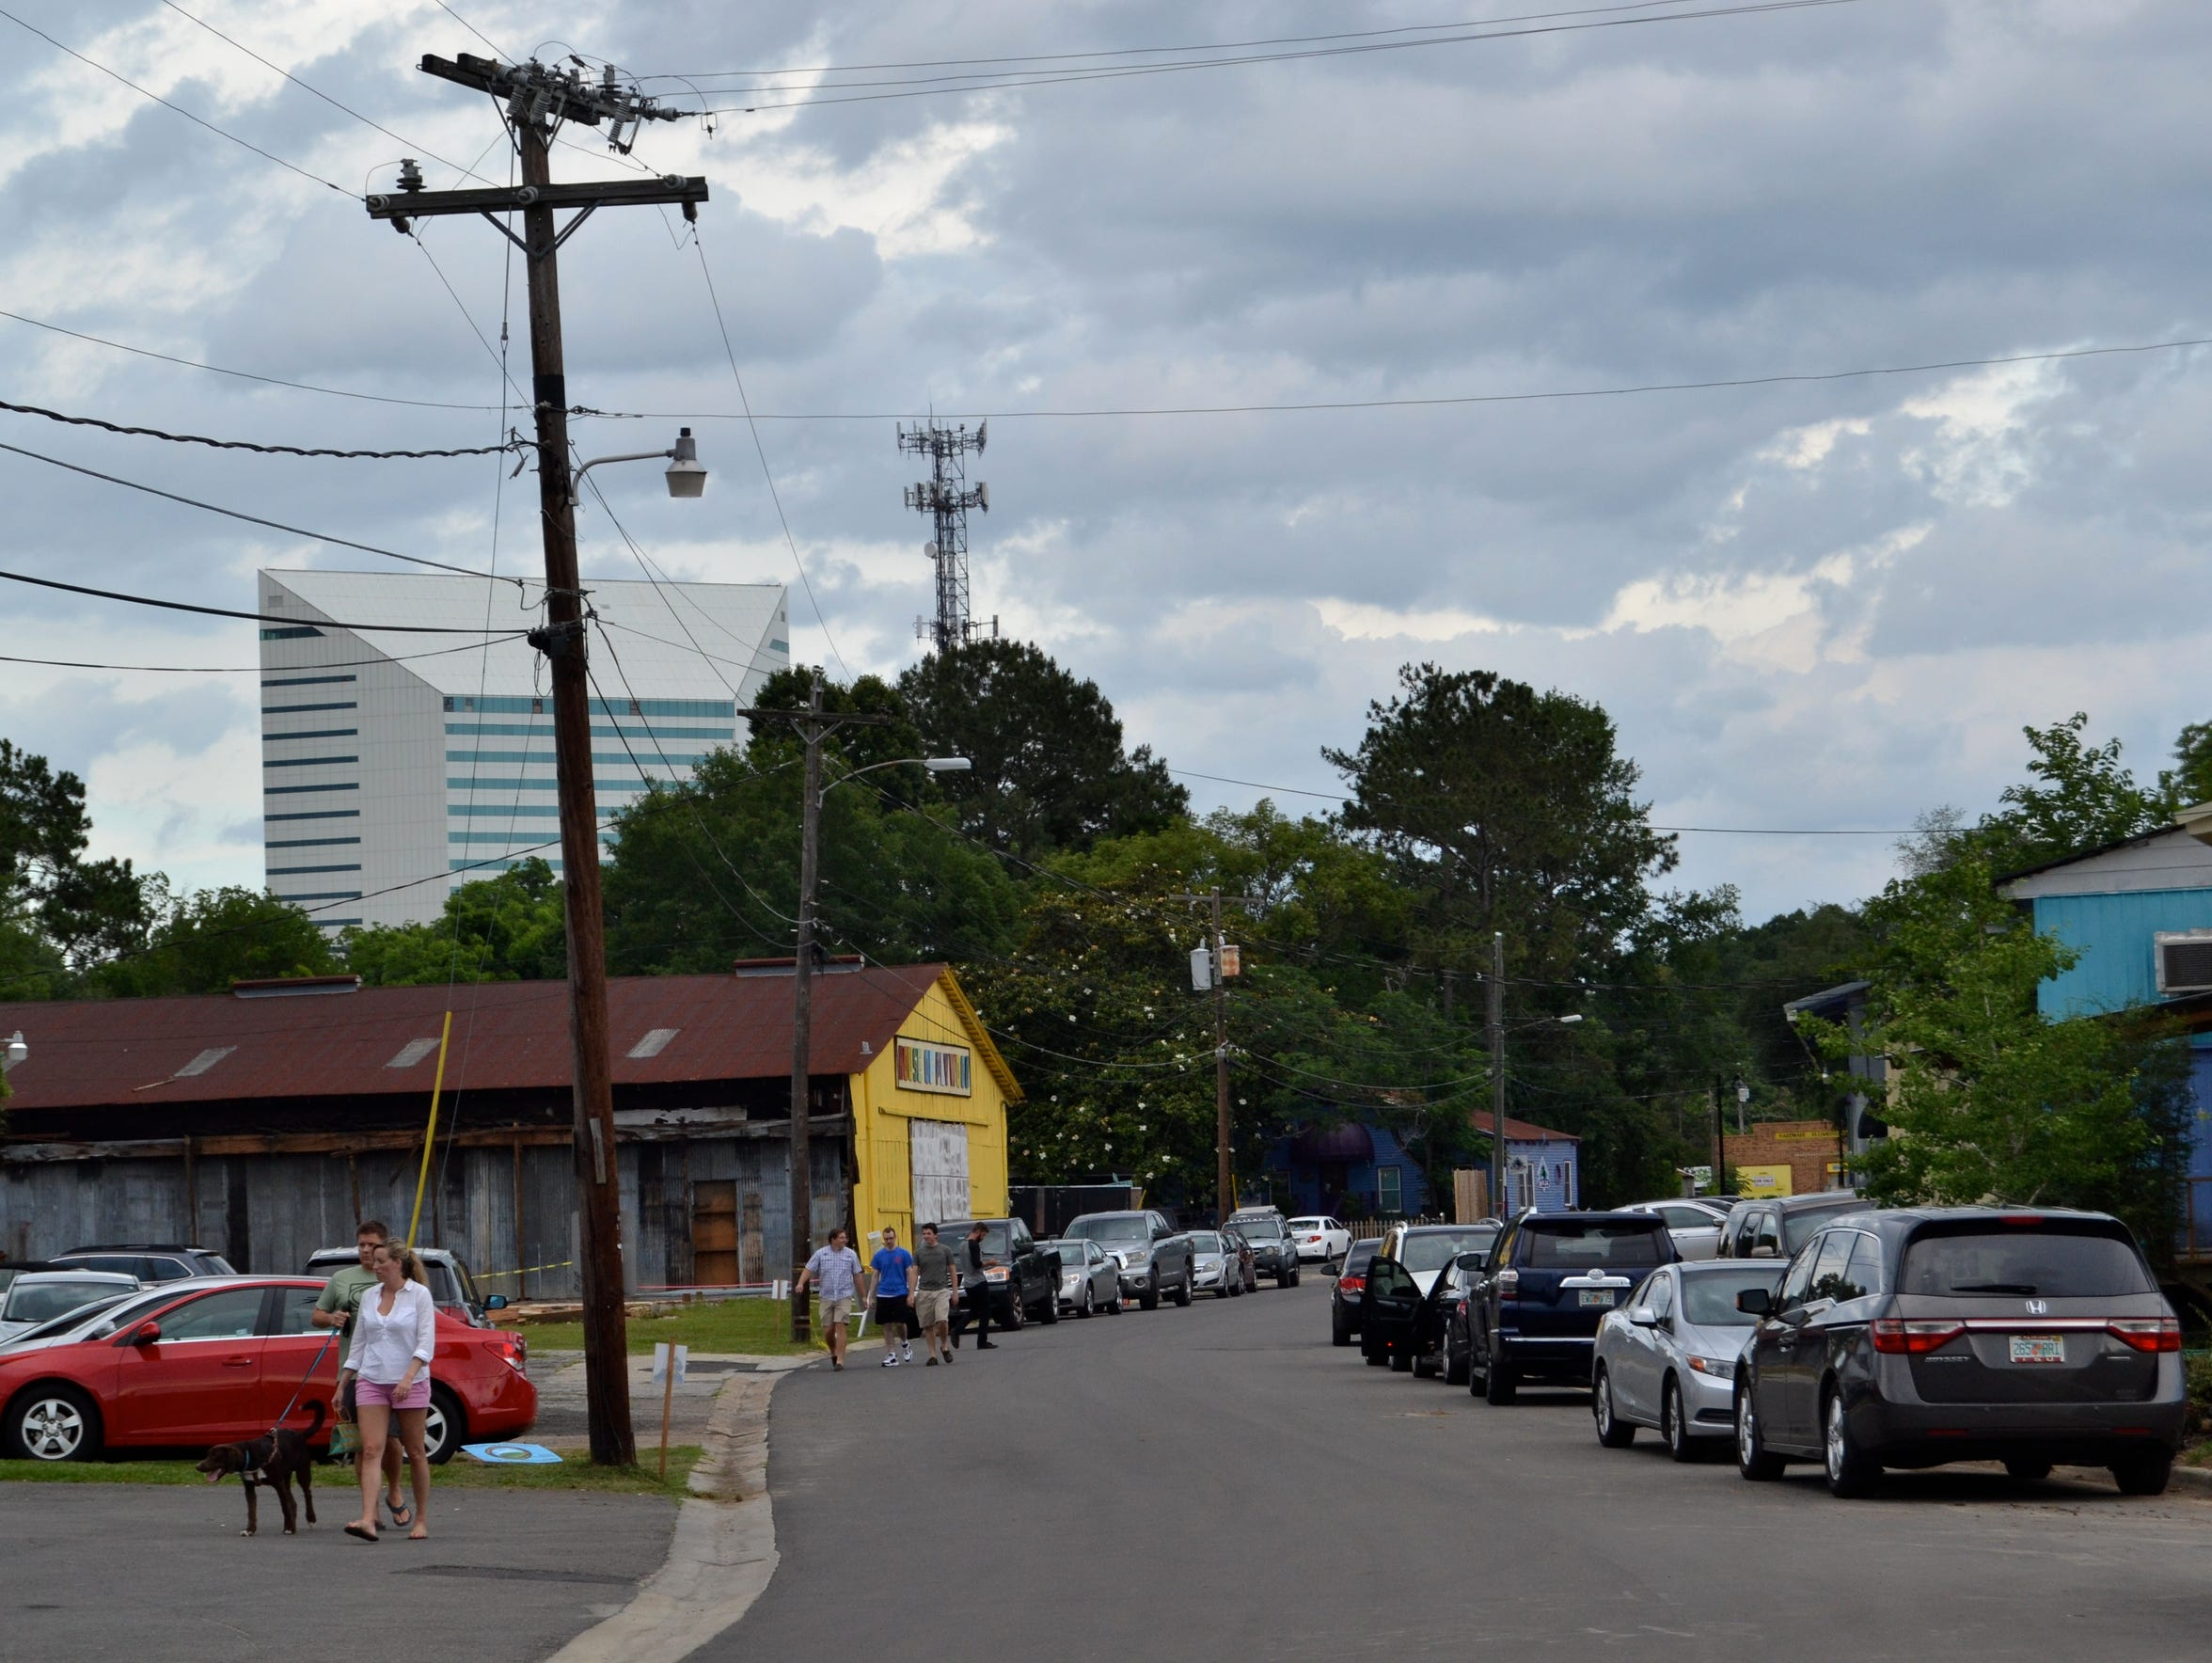 Cars line the streets of Railroad Square for Proof